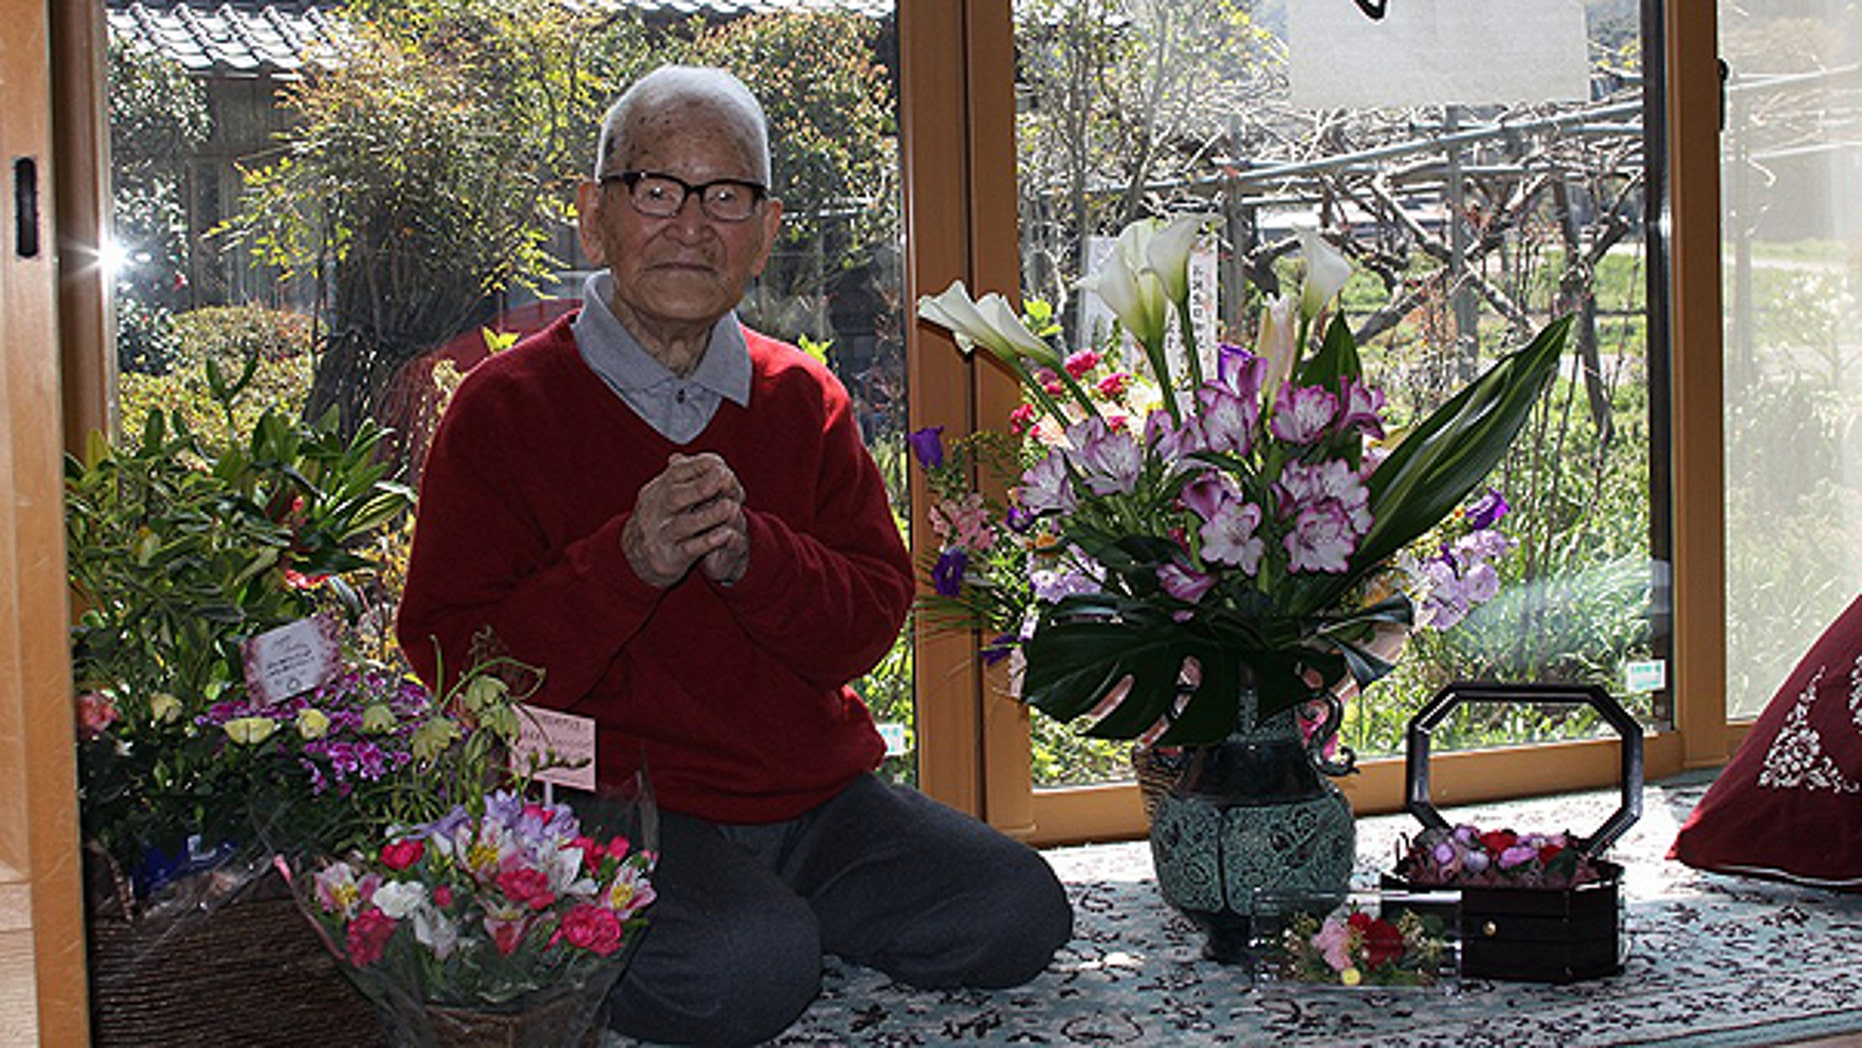 April 19: In this photo released by Kyotango City Office, Jirouemon Kimura poses during his 114th birthday at his home in Kyotango, western Japan.